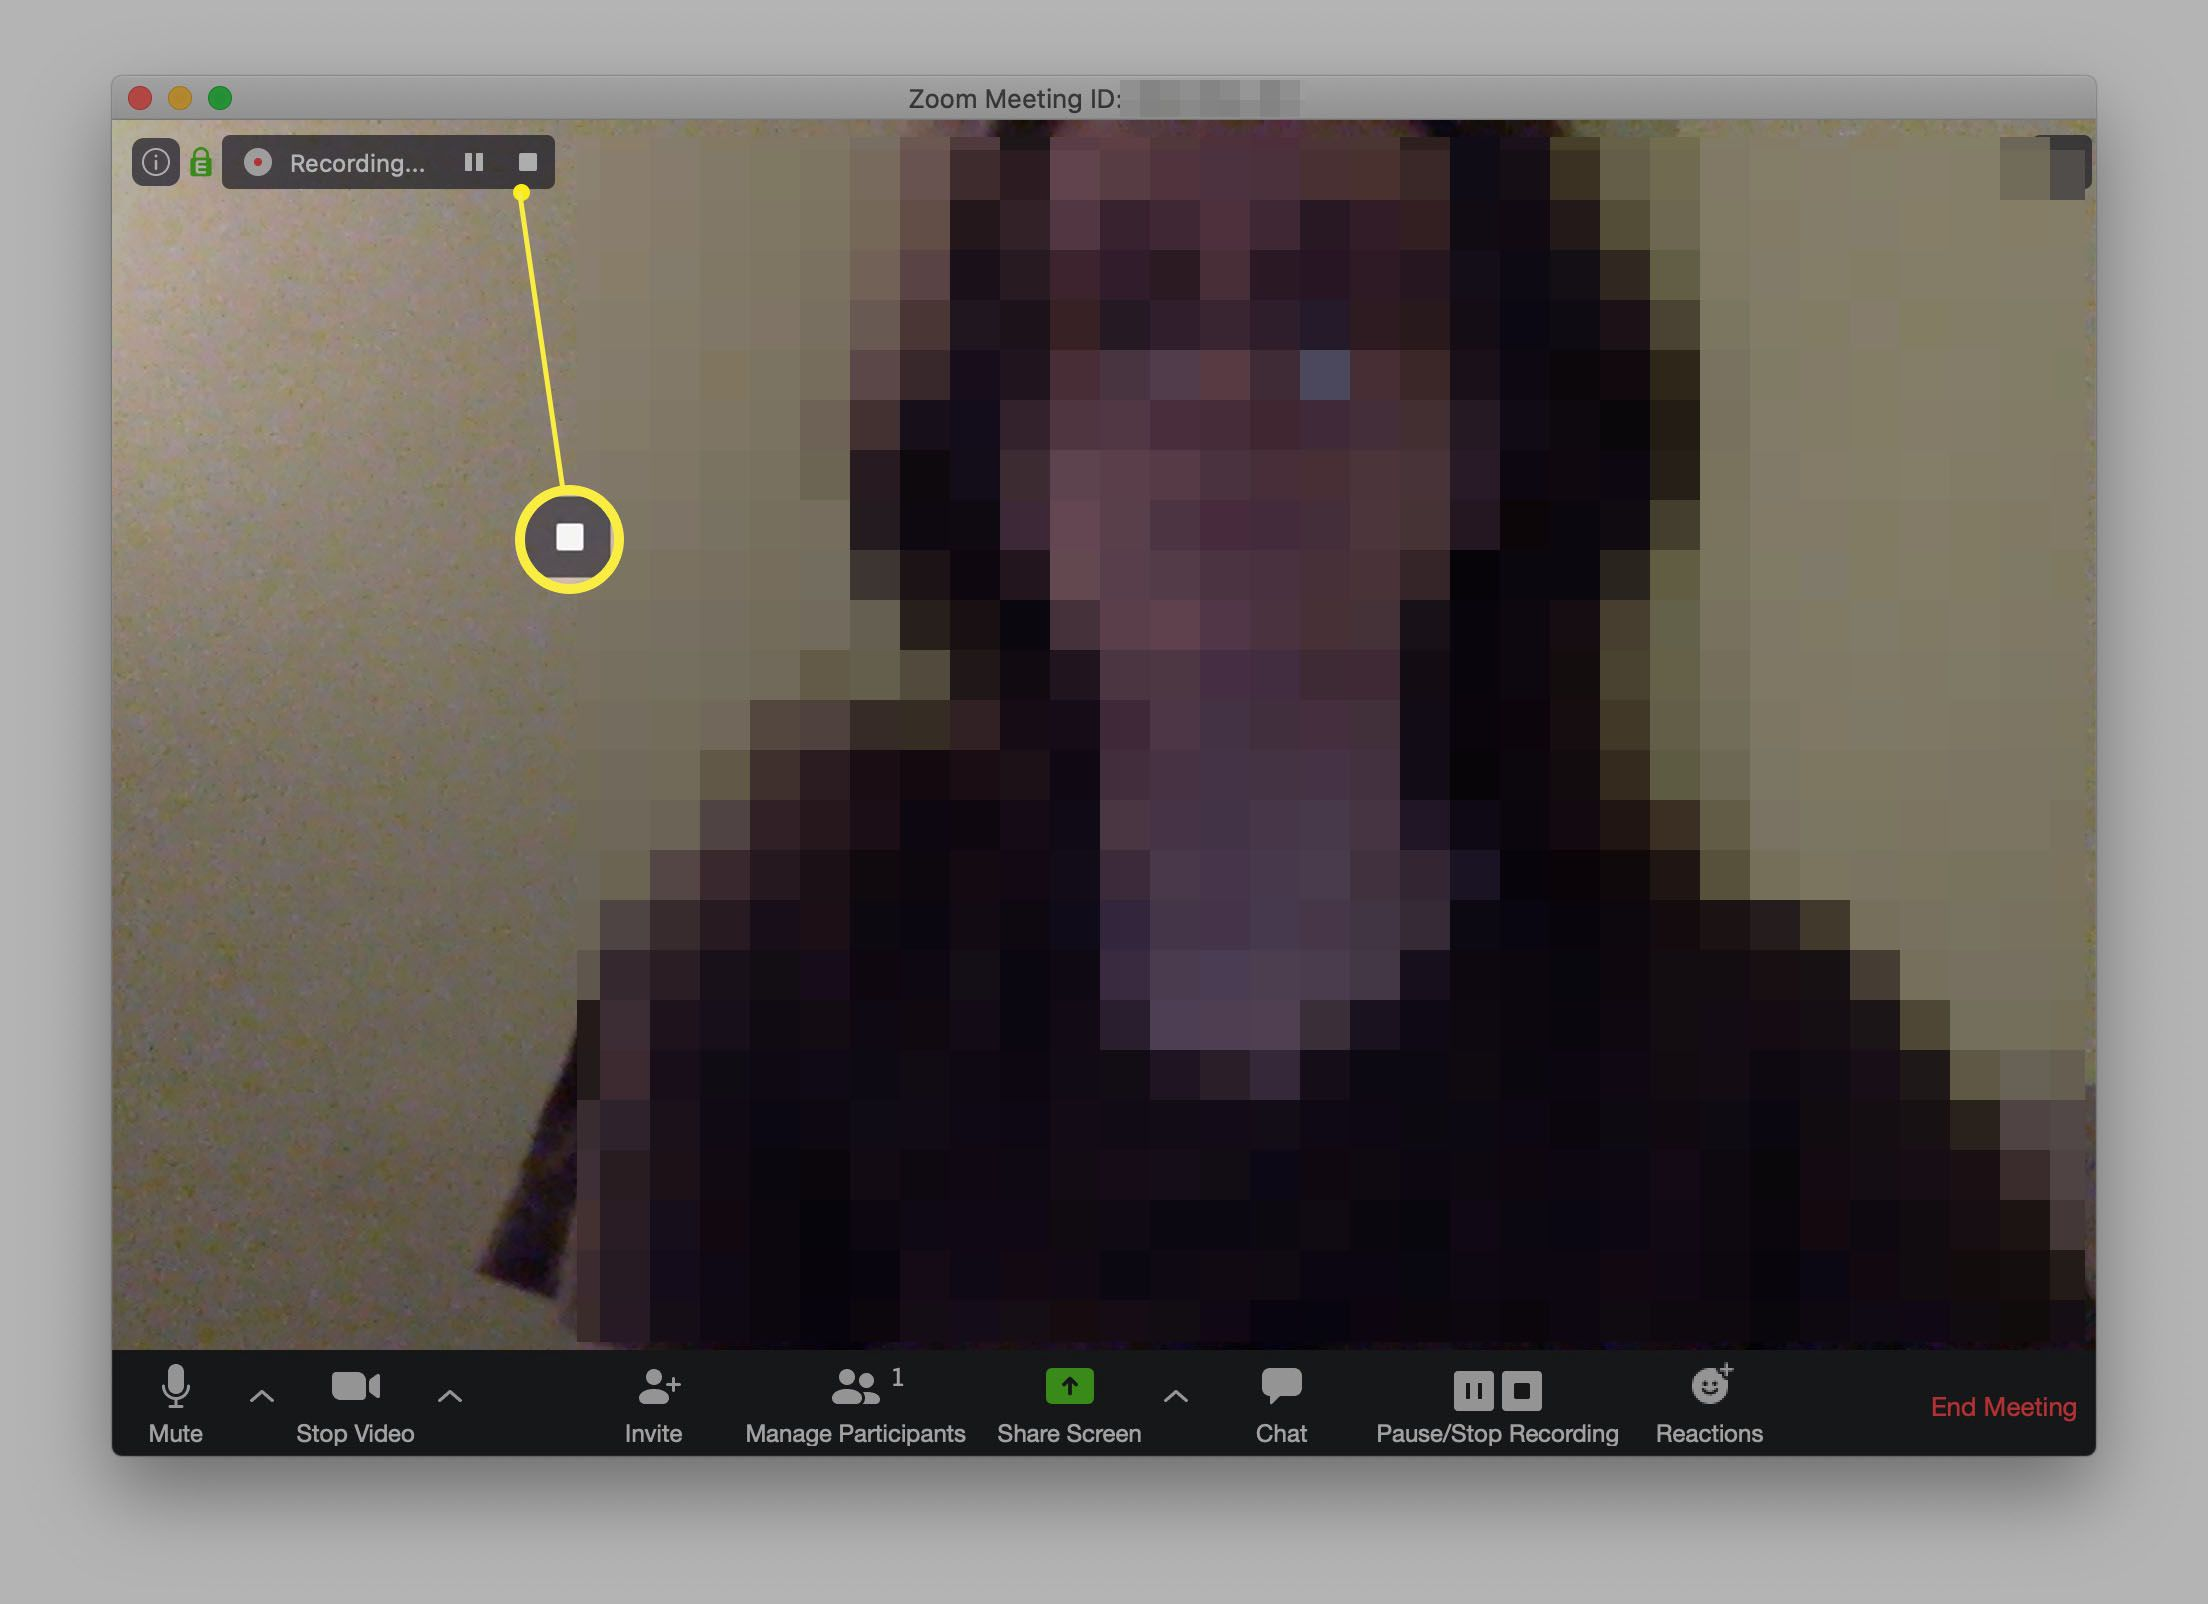 Zoom meeting being recorded with pause and stop highlighted